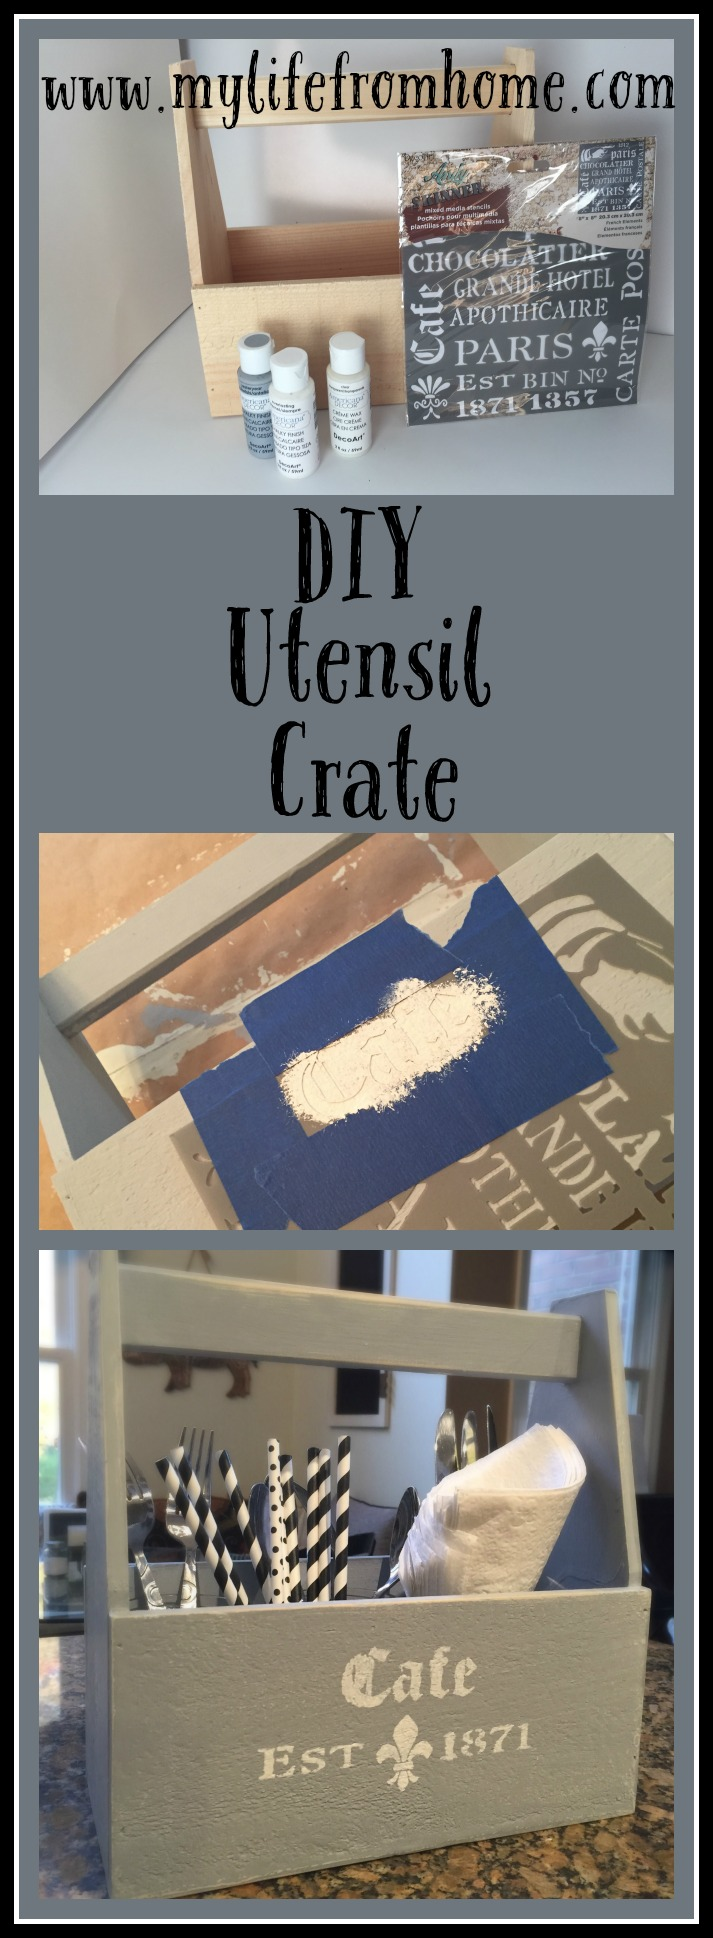 DIY Utensil Crate by www.mylifefromhome.com